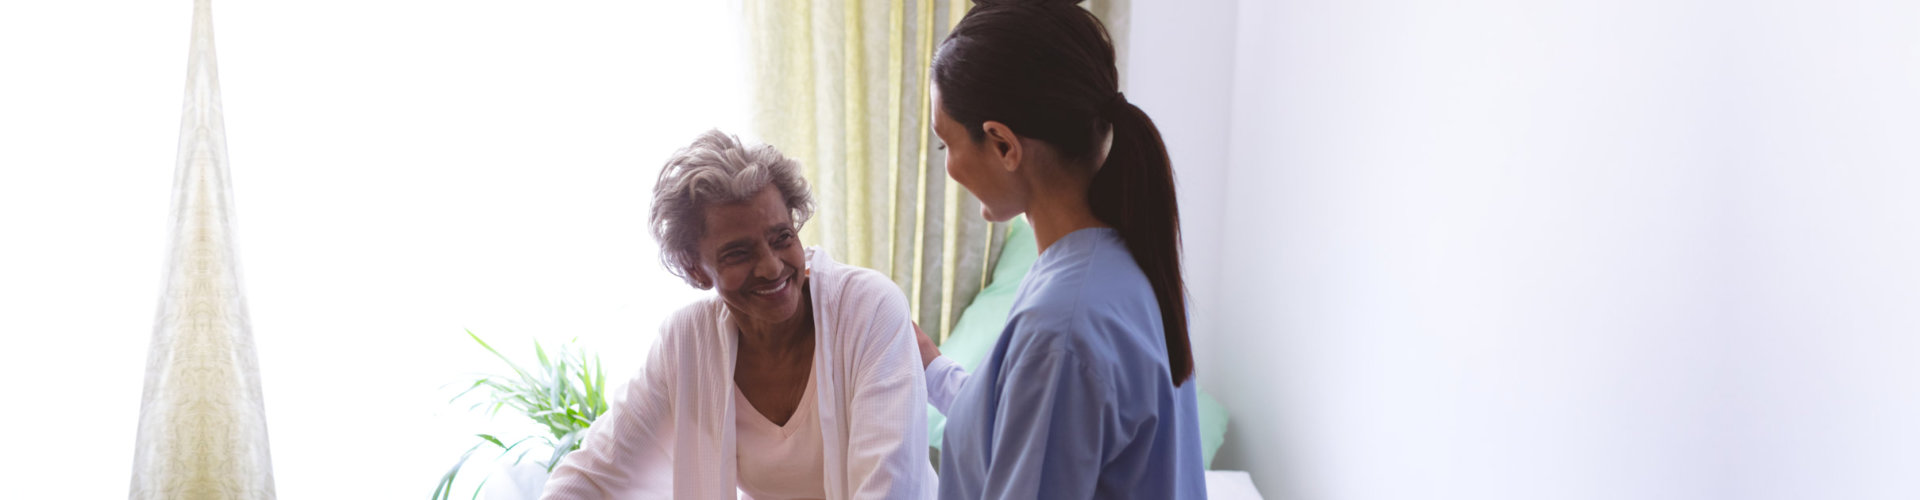 young caregiver assisting senior woman to walk